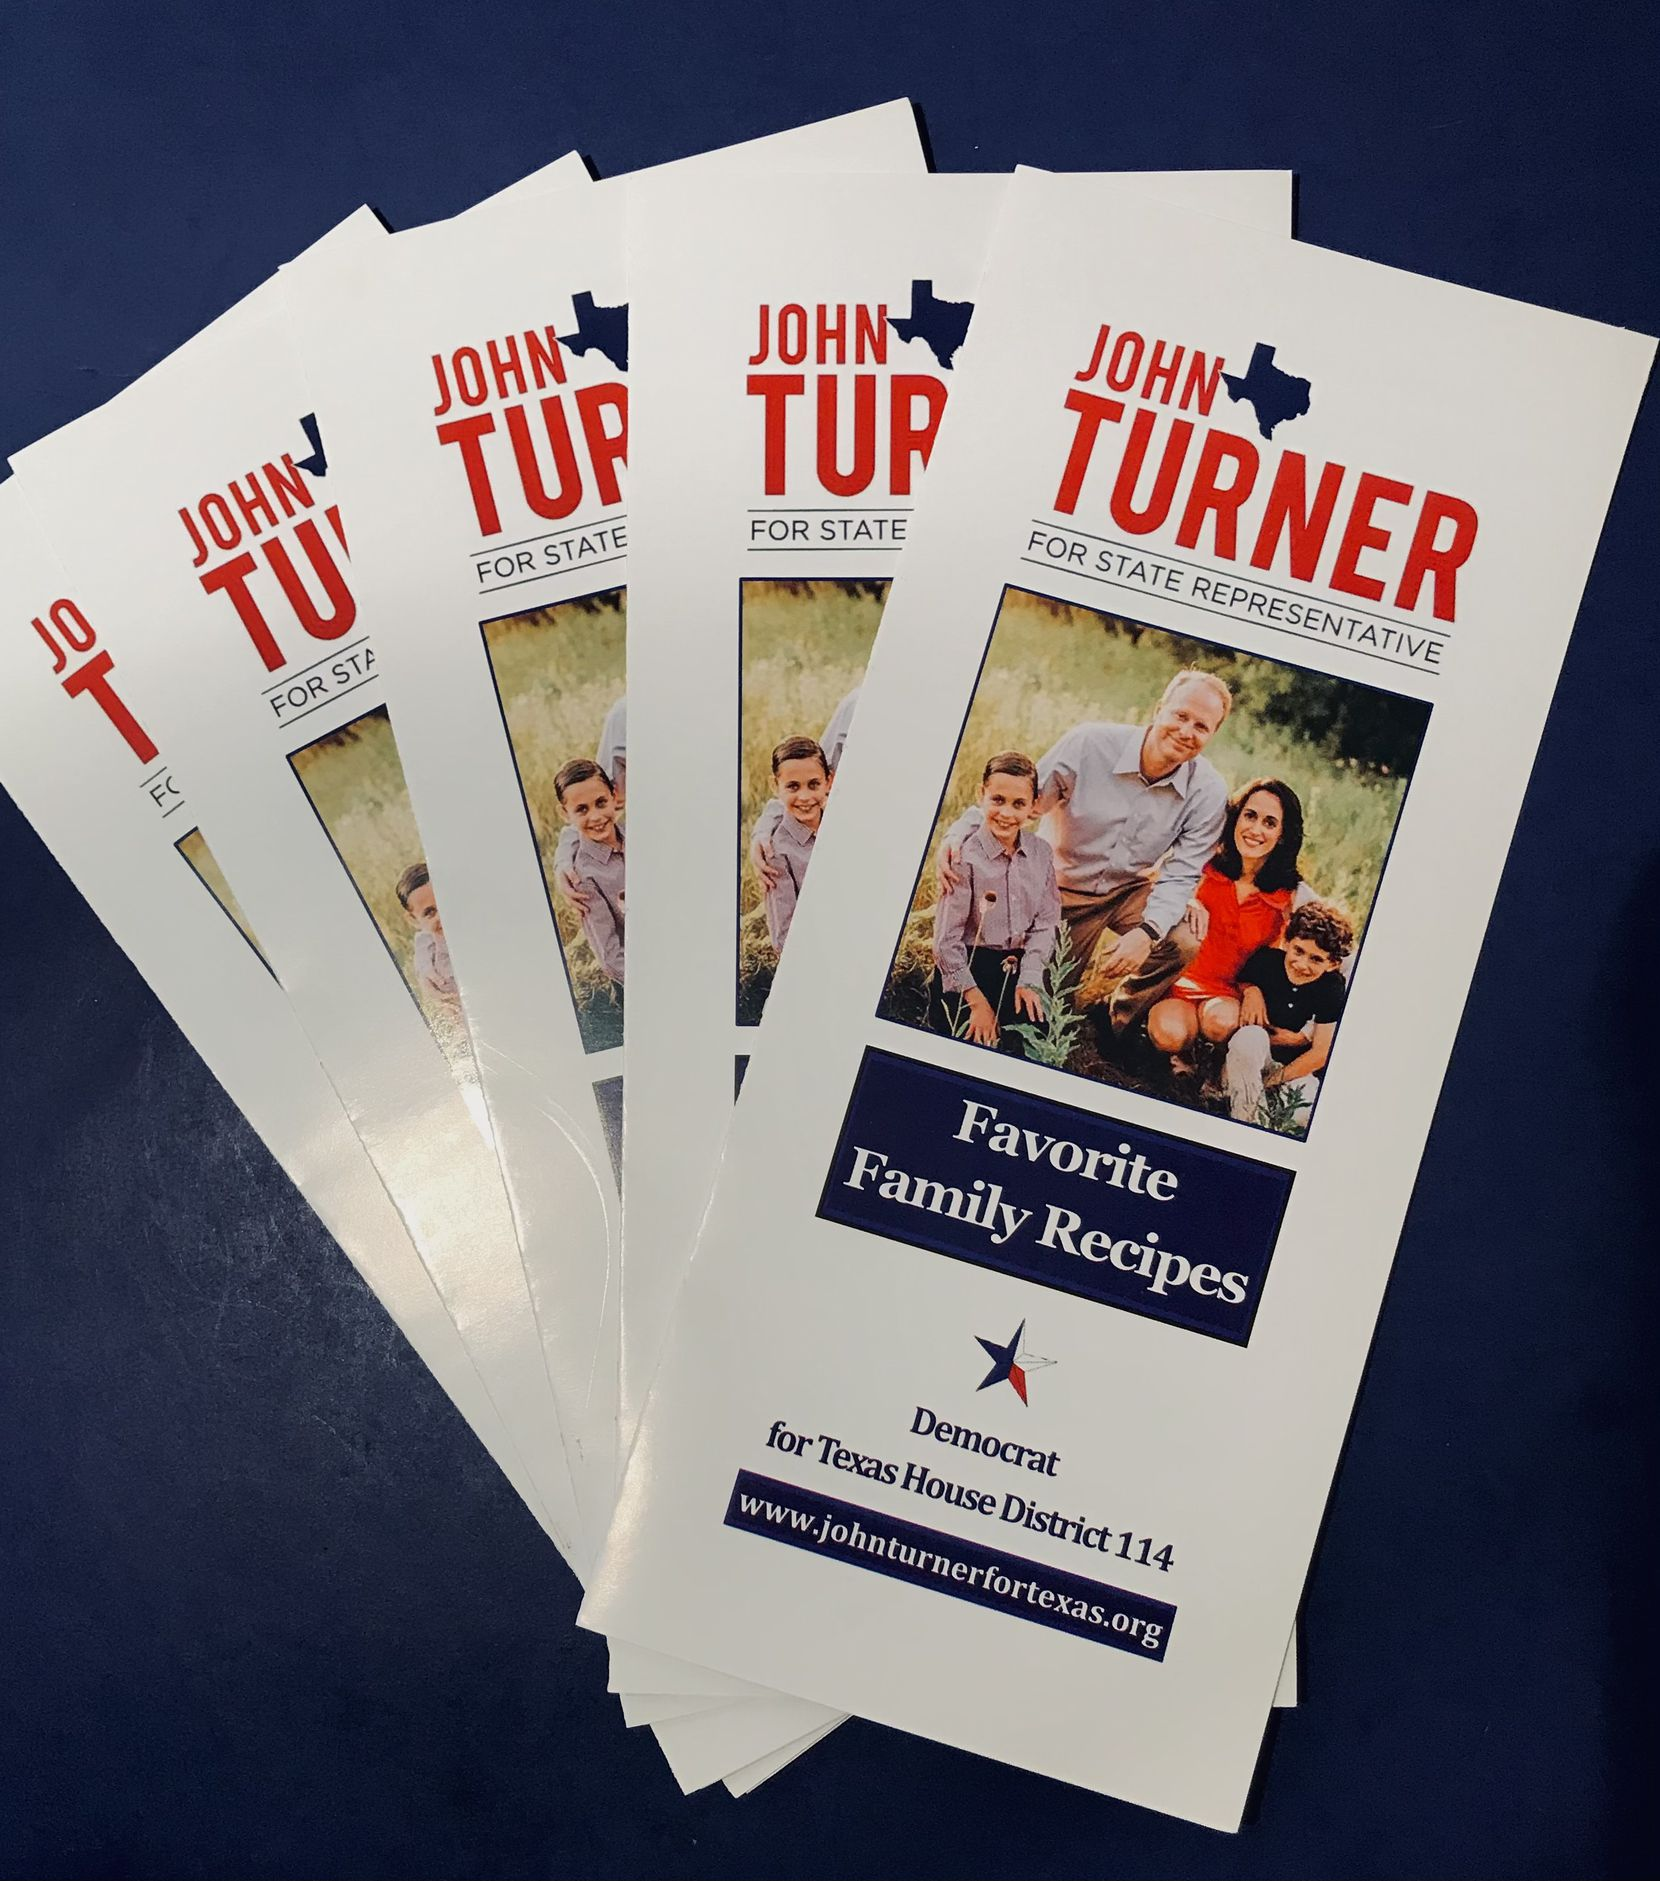 In the 1980's, Jim Turner handed out recipe books during his campaign for state office. When his son John Turner ran for office in Dallas in 2018, he revived the political tradition.